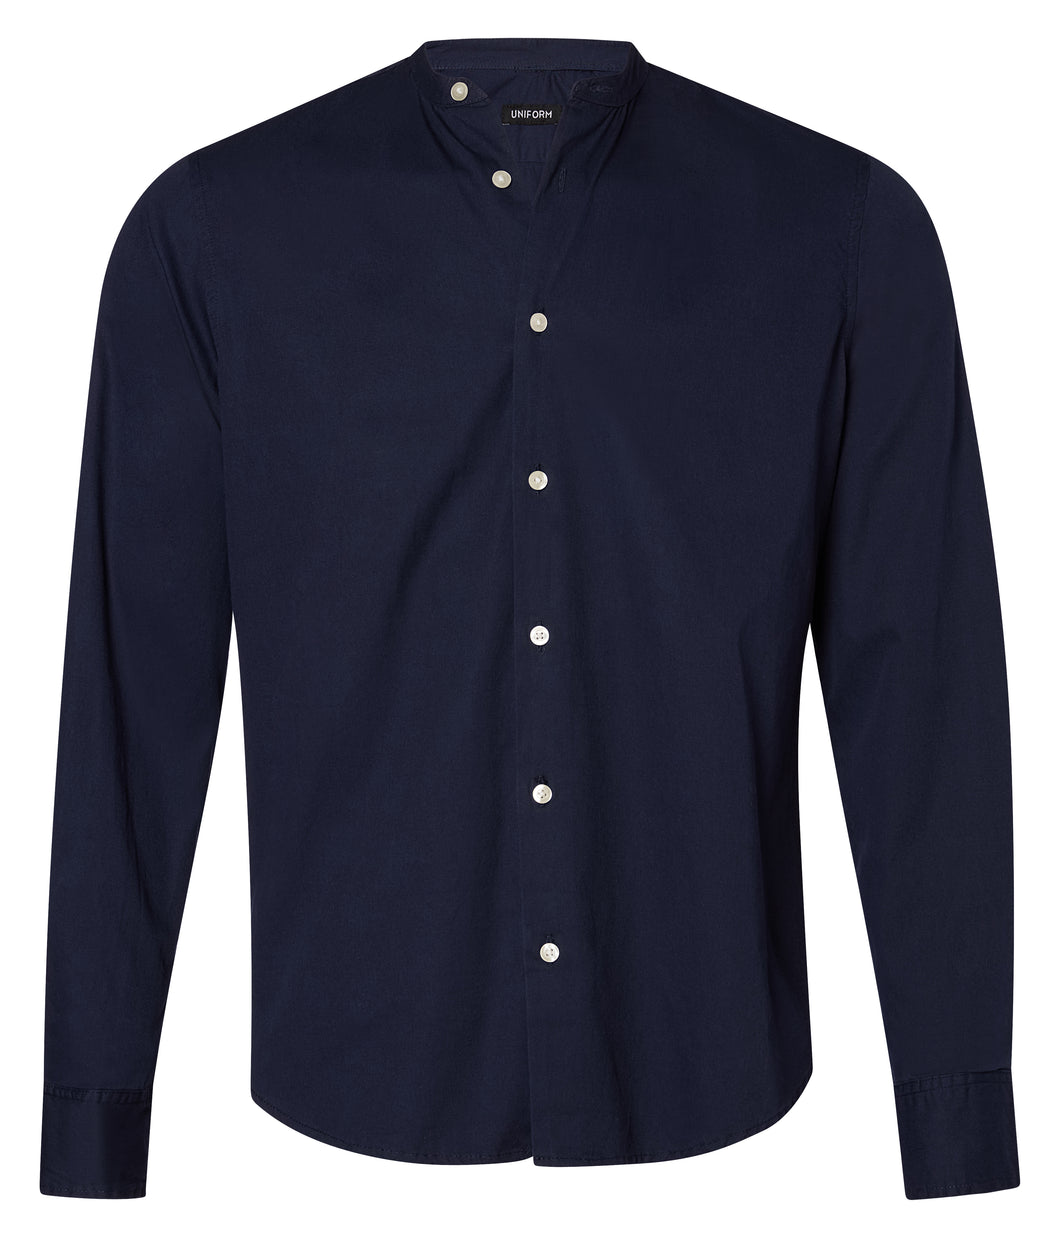 The Chief Collar Oxford